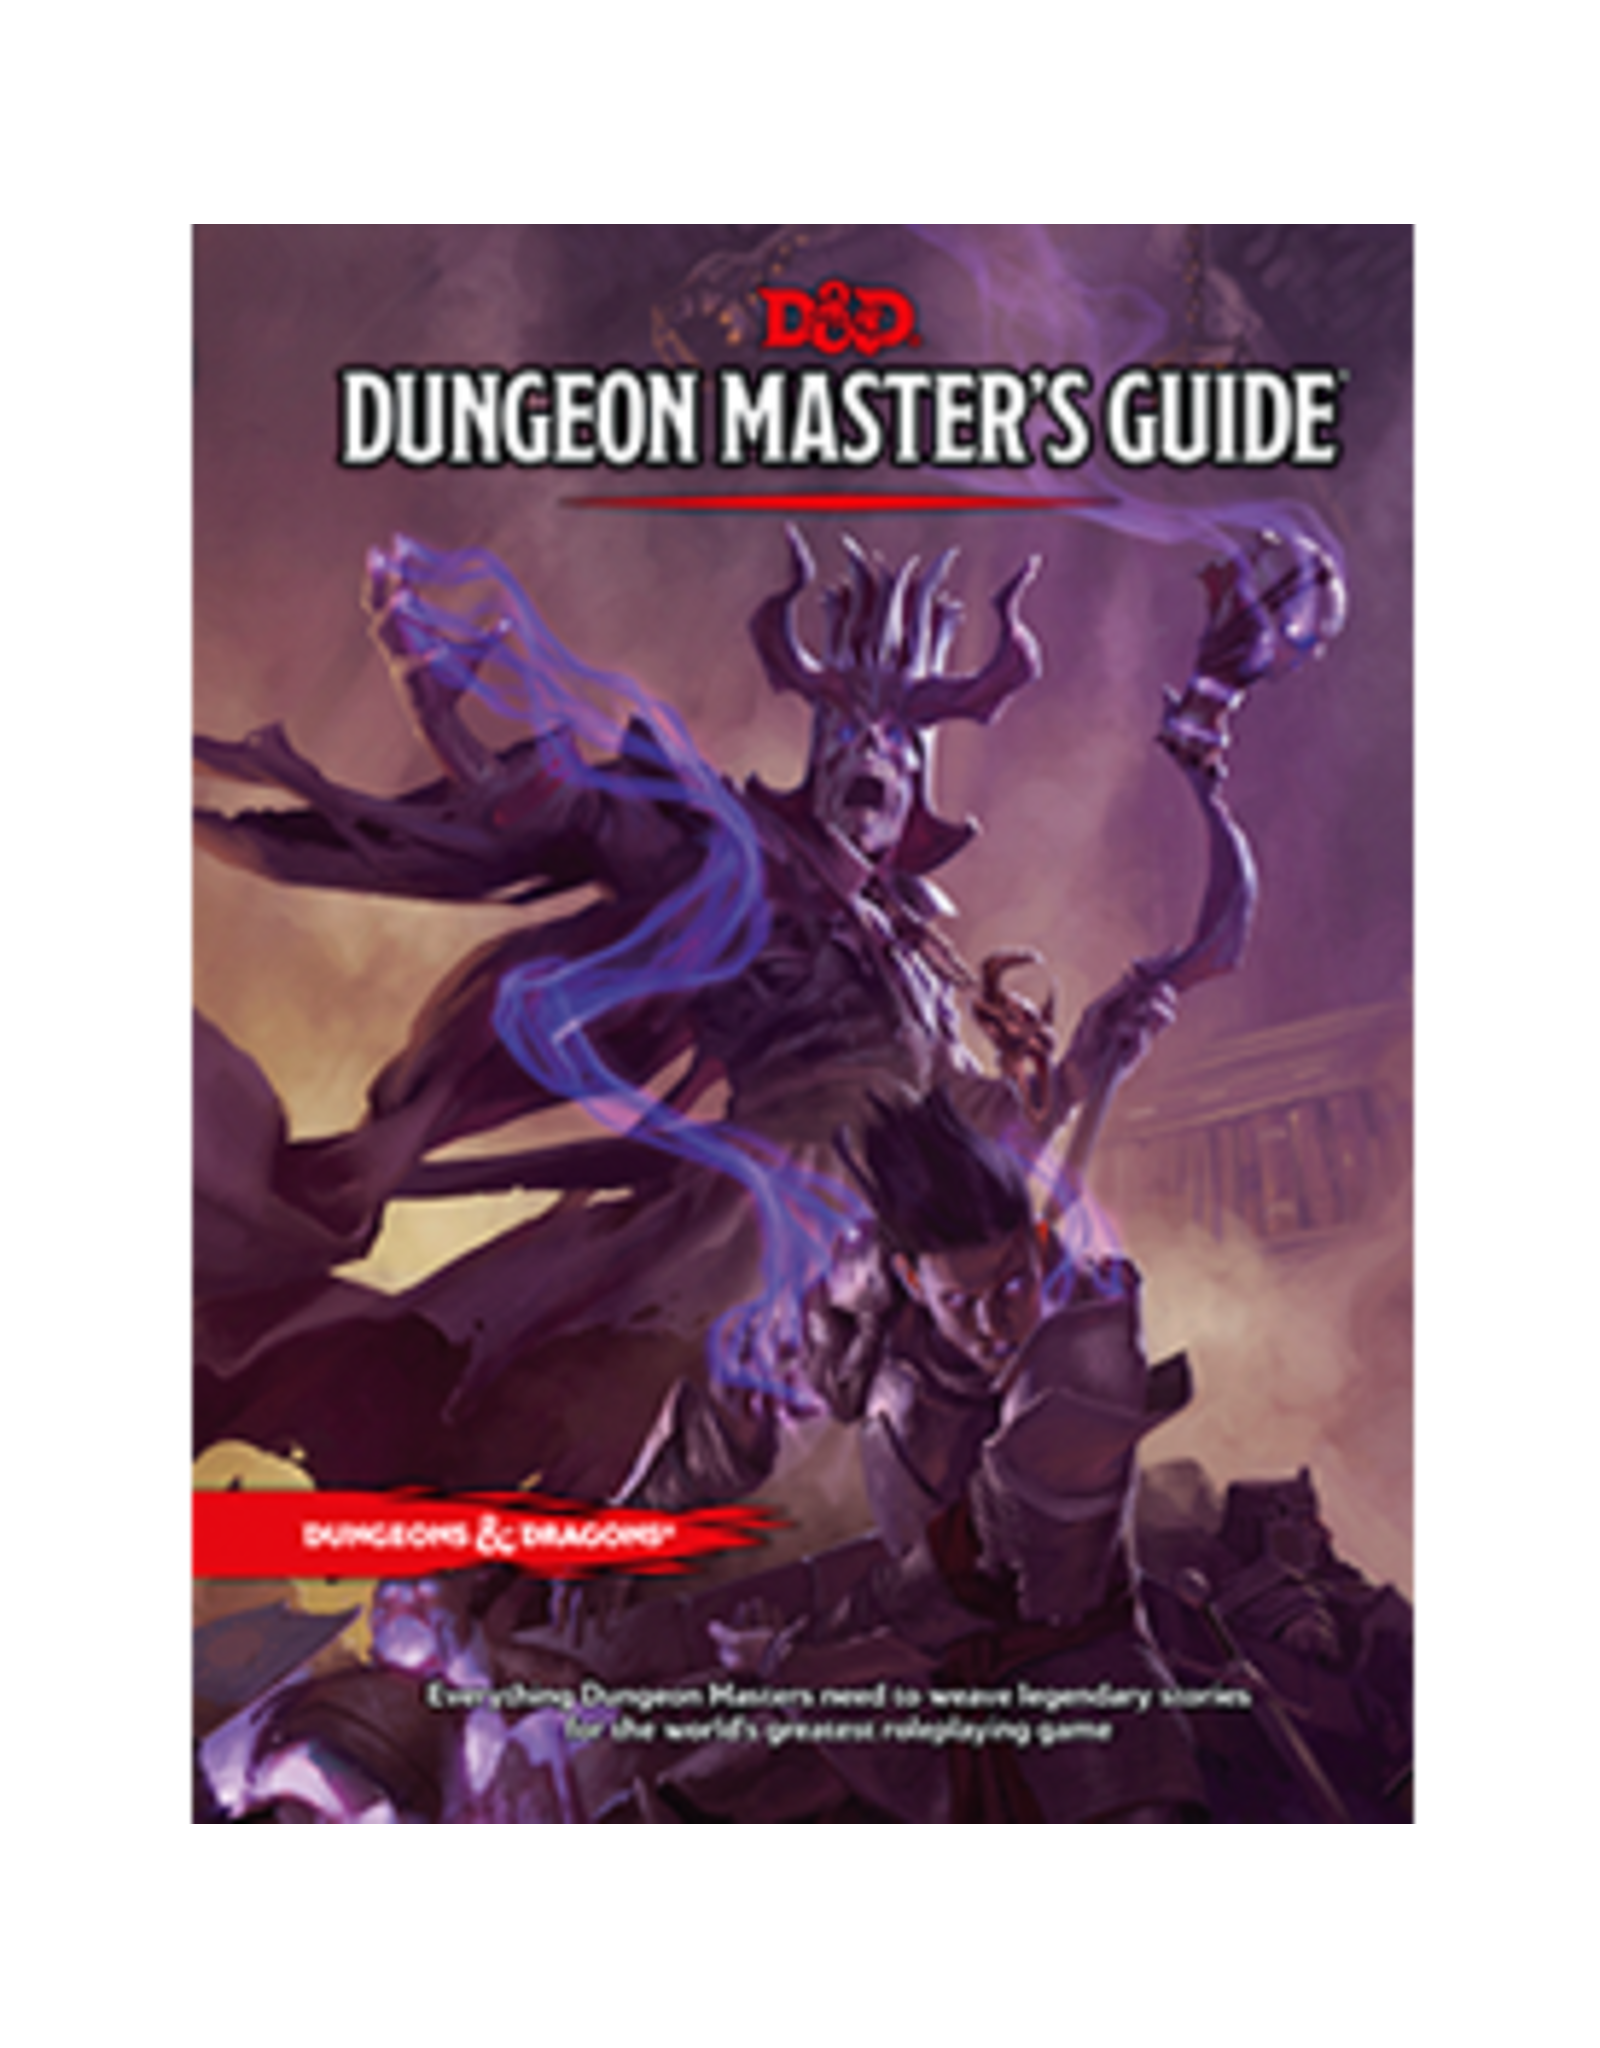 DnD D&D Dungeon Masters Guide 5th